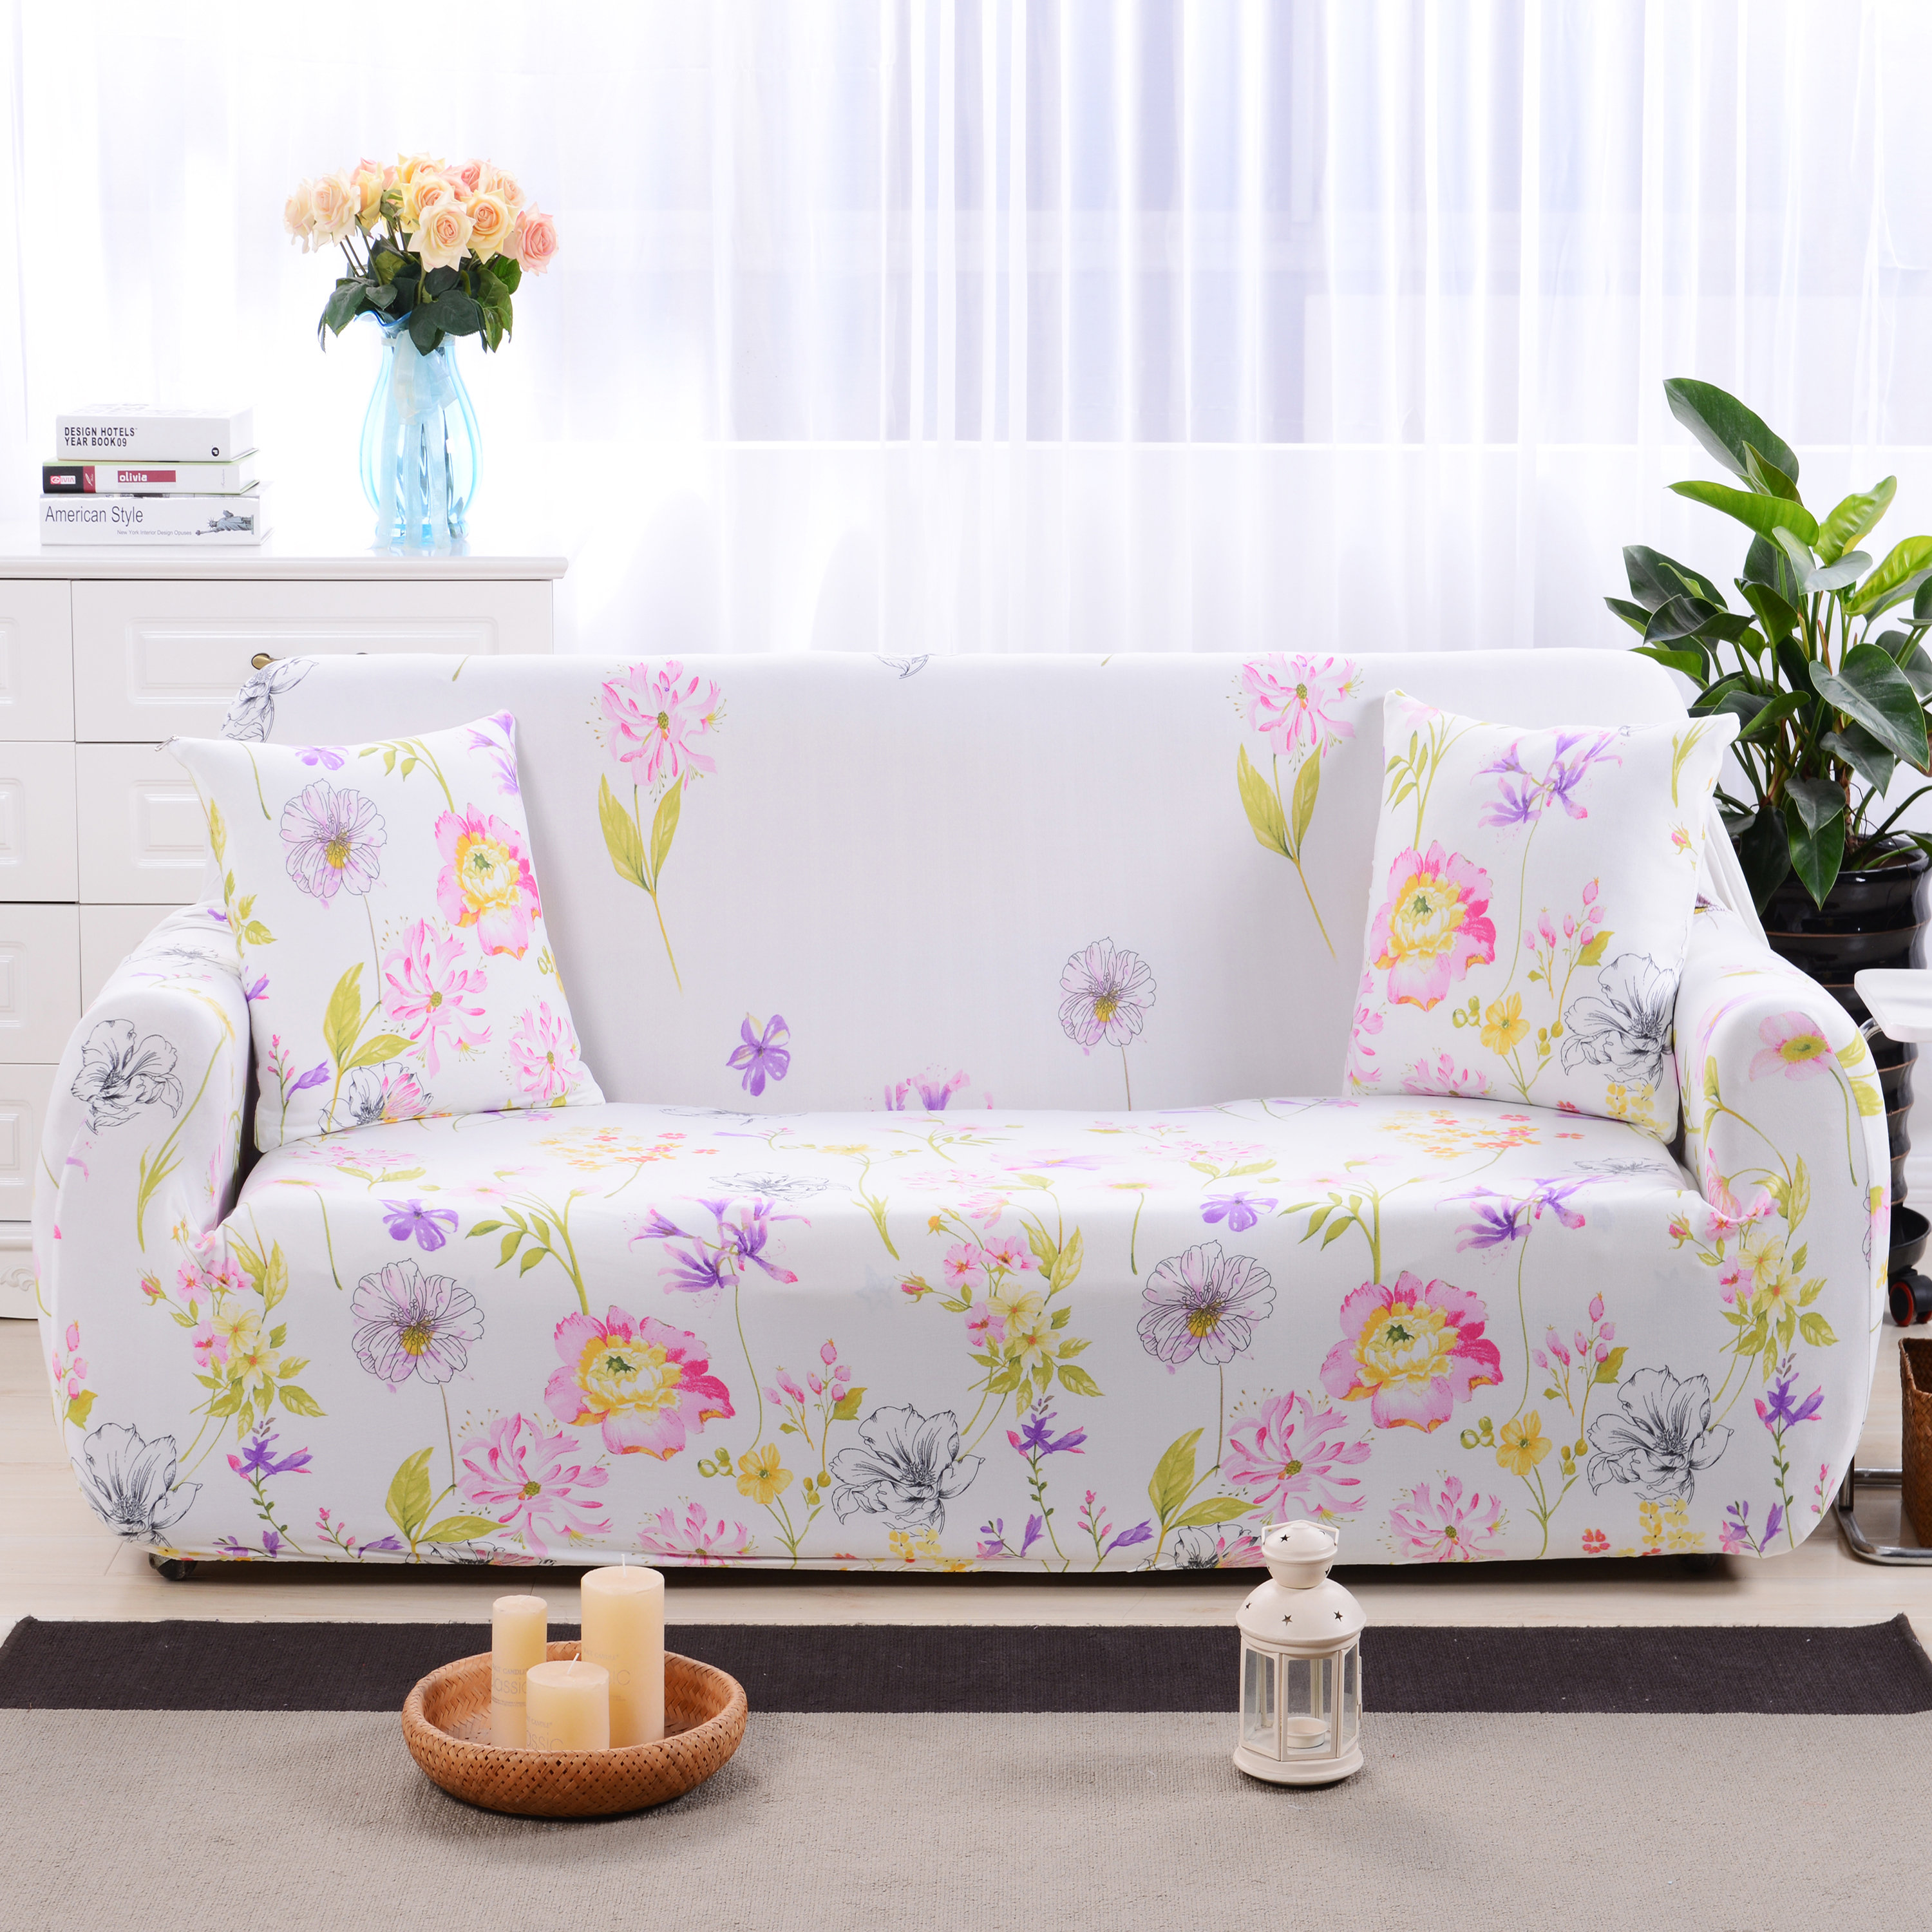 Popular Corner Couches Covers Buy Cheap Corner Couches Covers lots